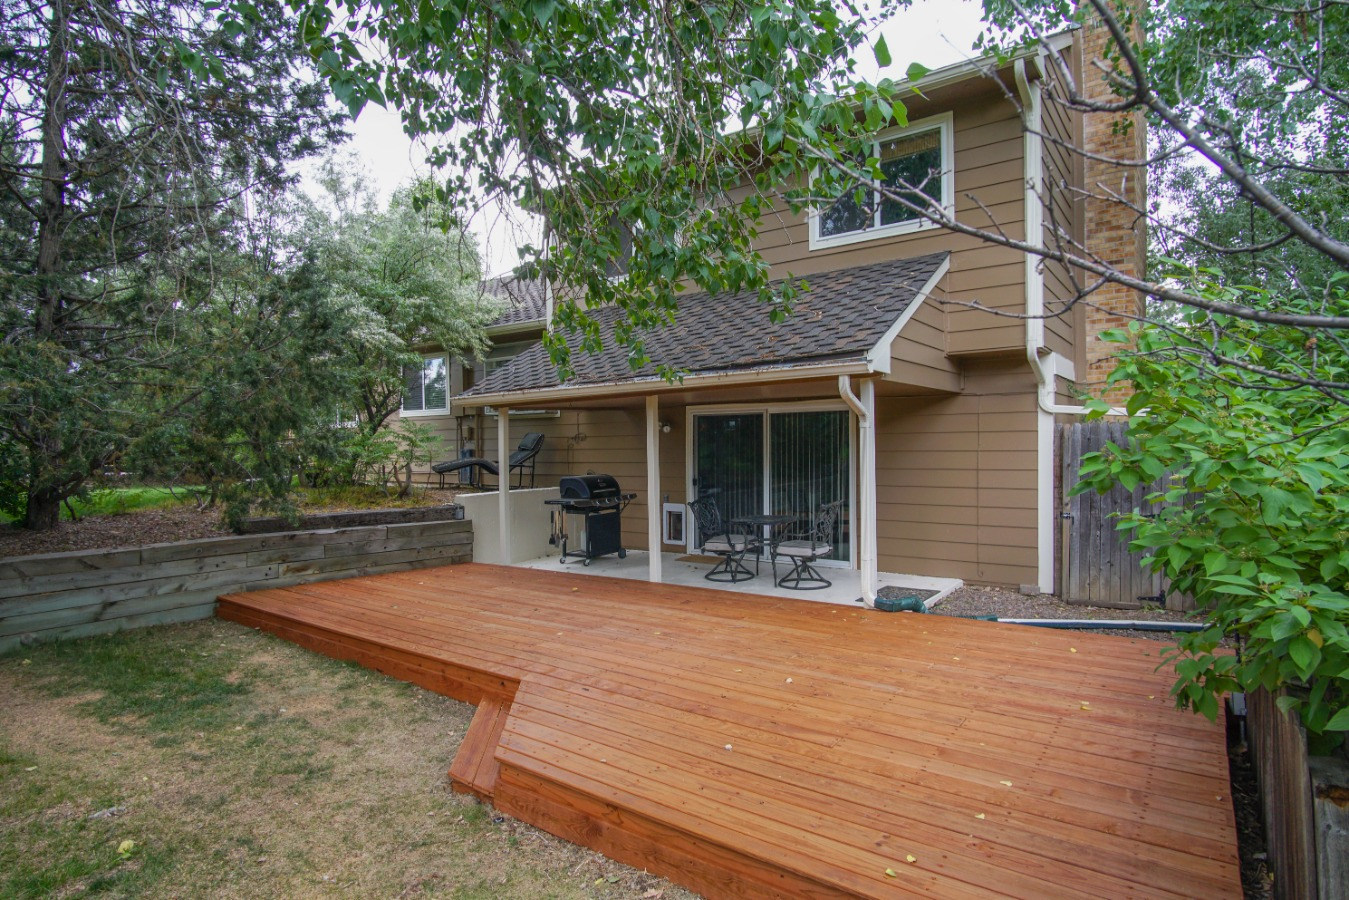 Beautiful yard with covered patio and wood deck